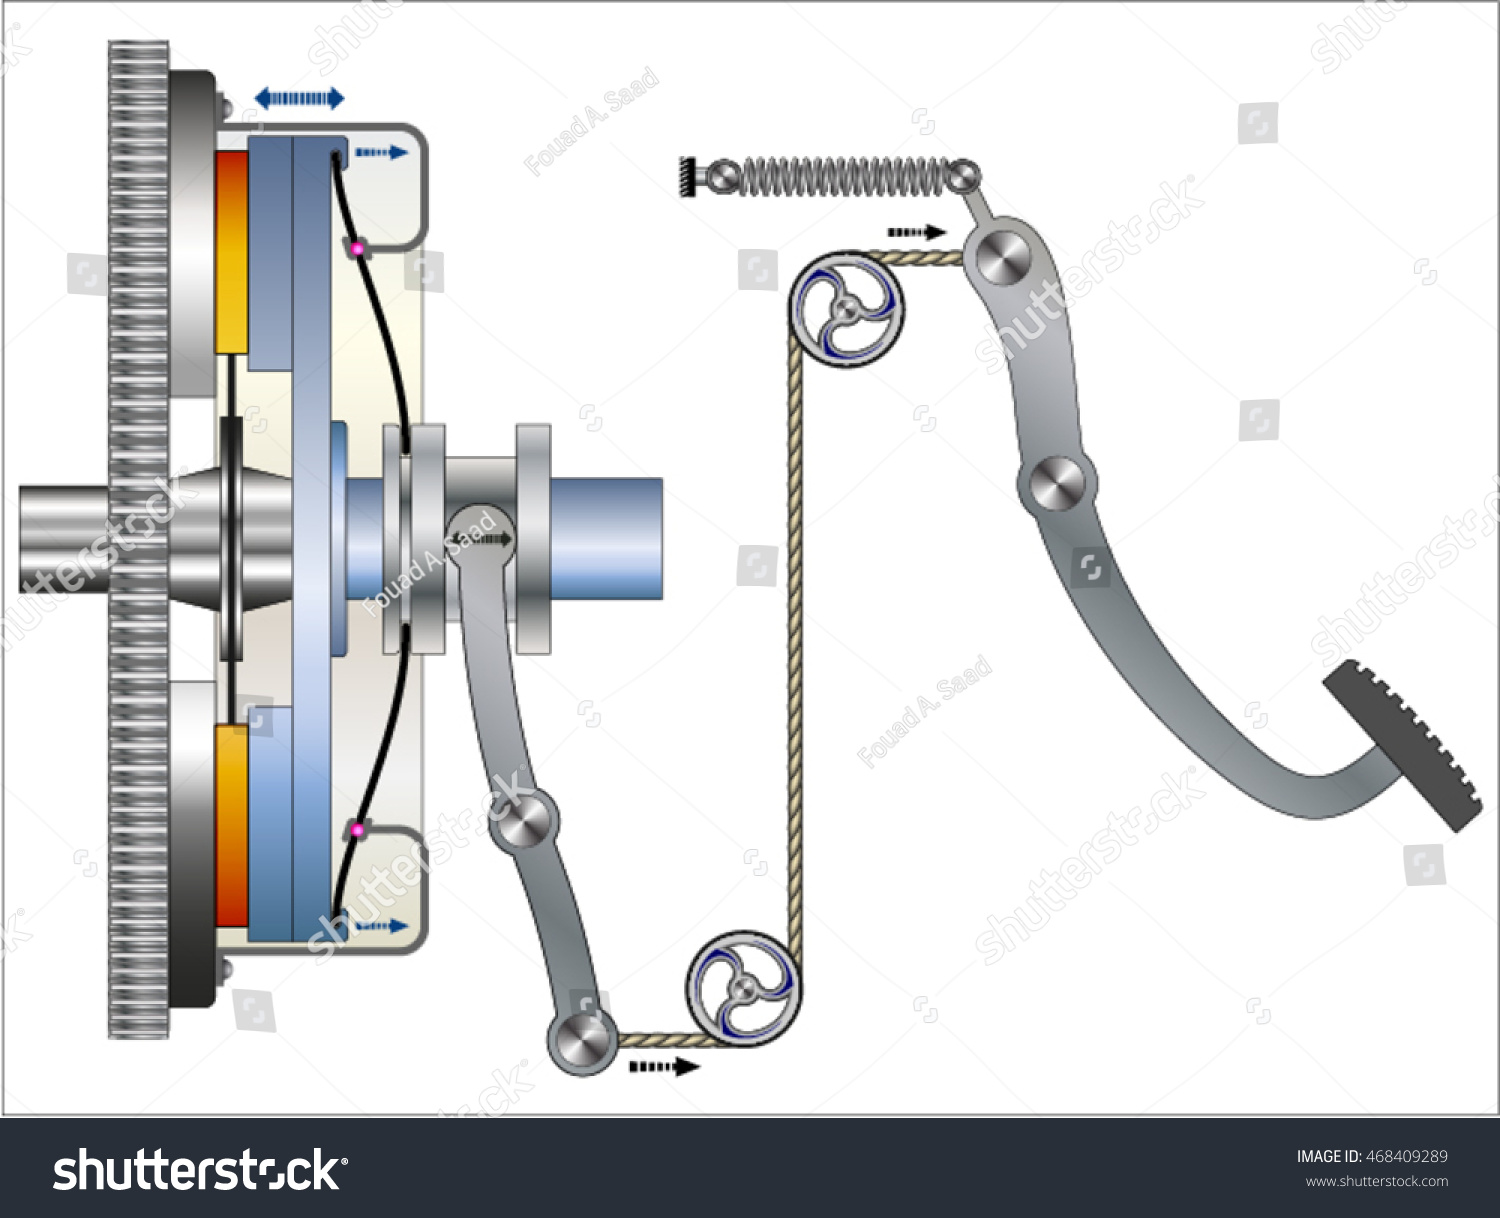 Clutch Diagram Stock Vector 468409289